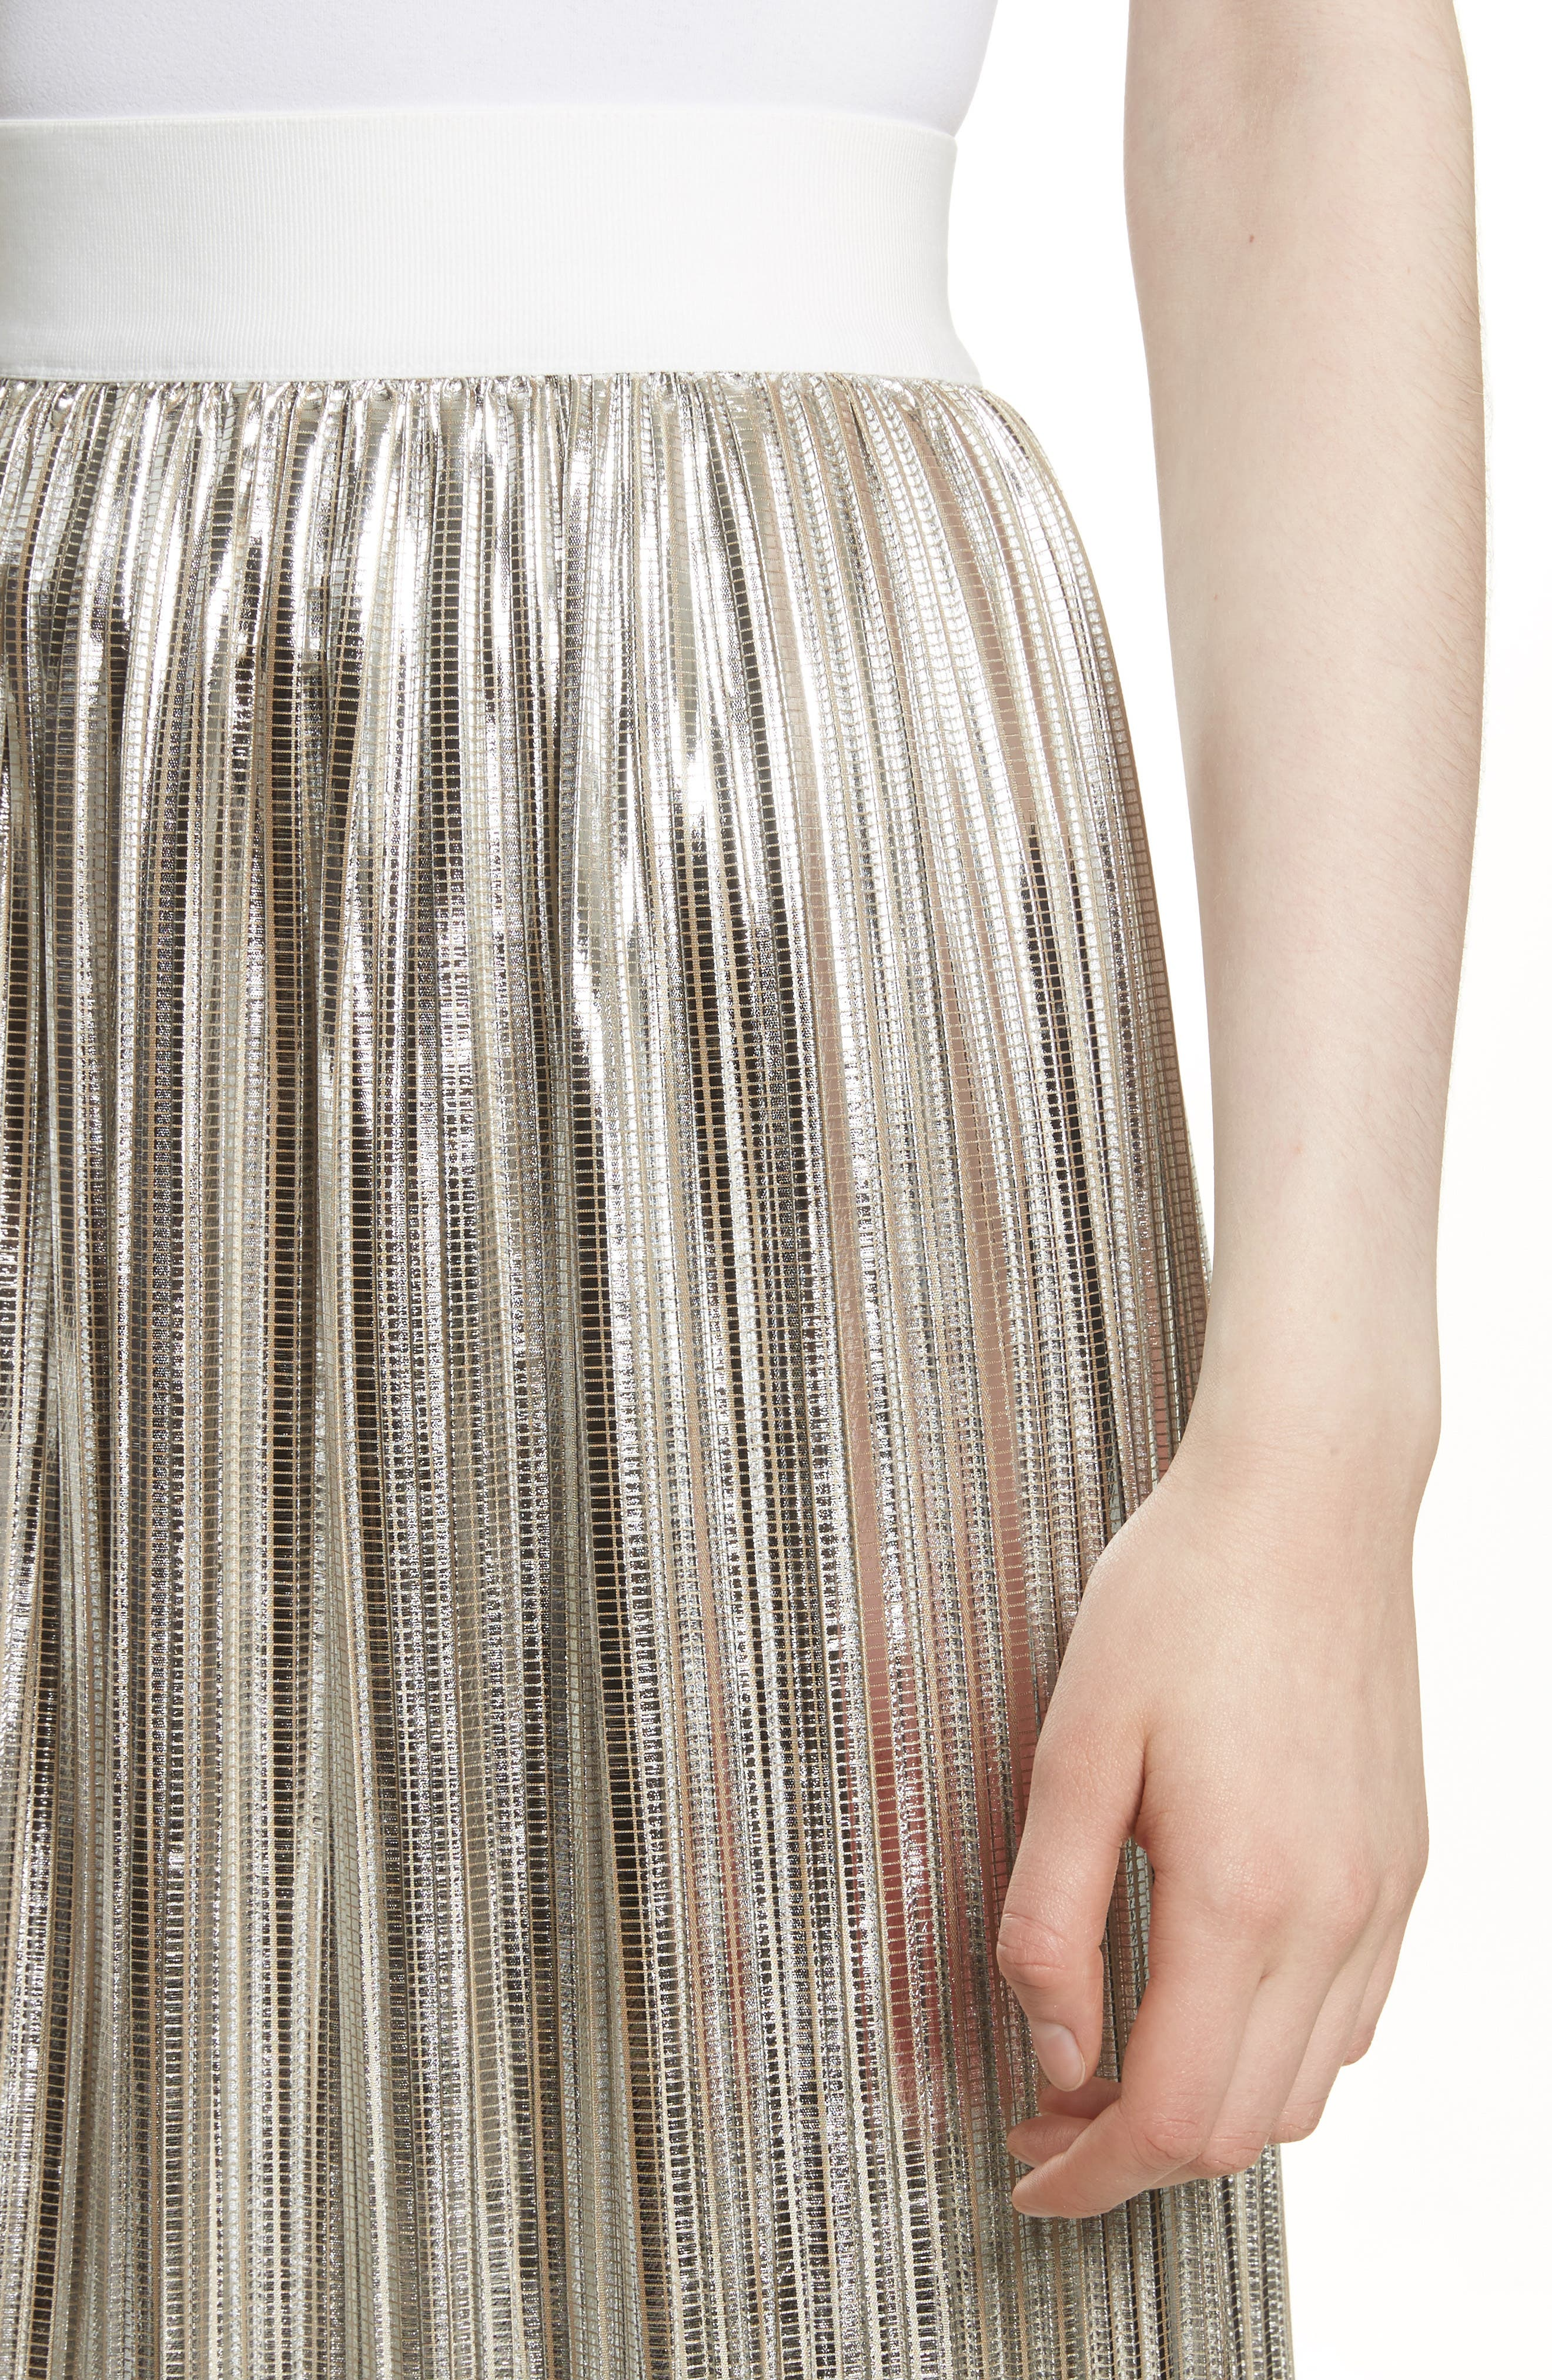 Mikaela Pleat Metallic Skirt,                             Alternate thumbnail 4, color,                             Silver Metallic